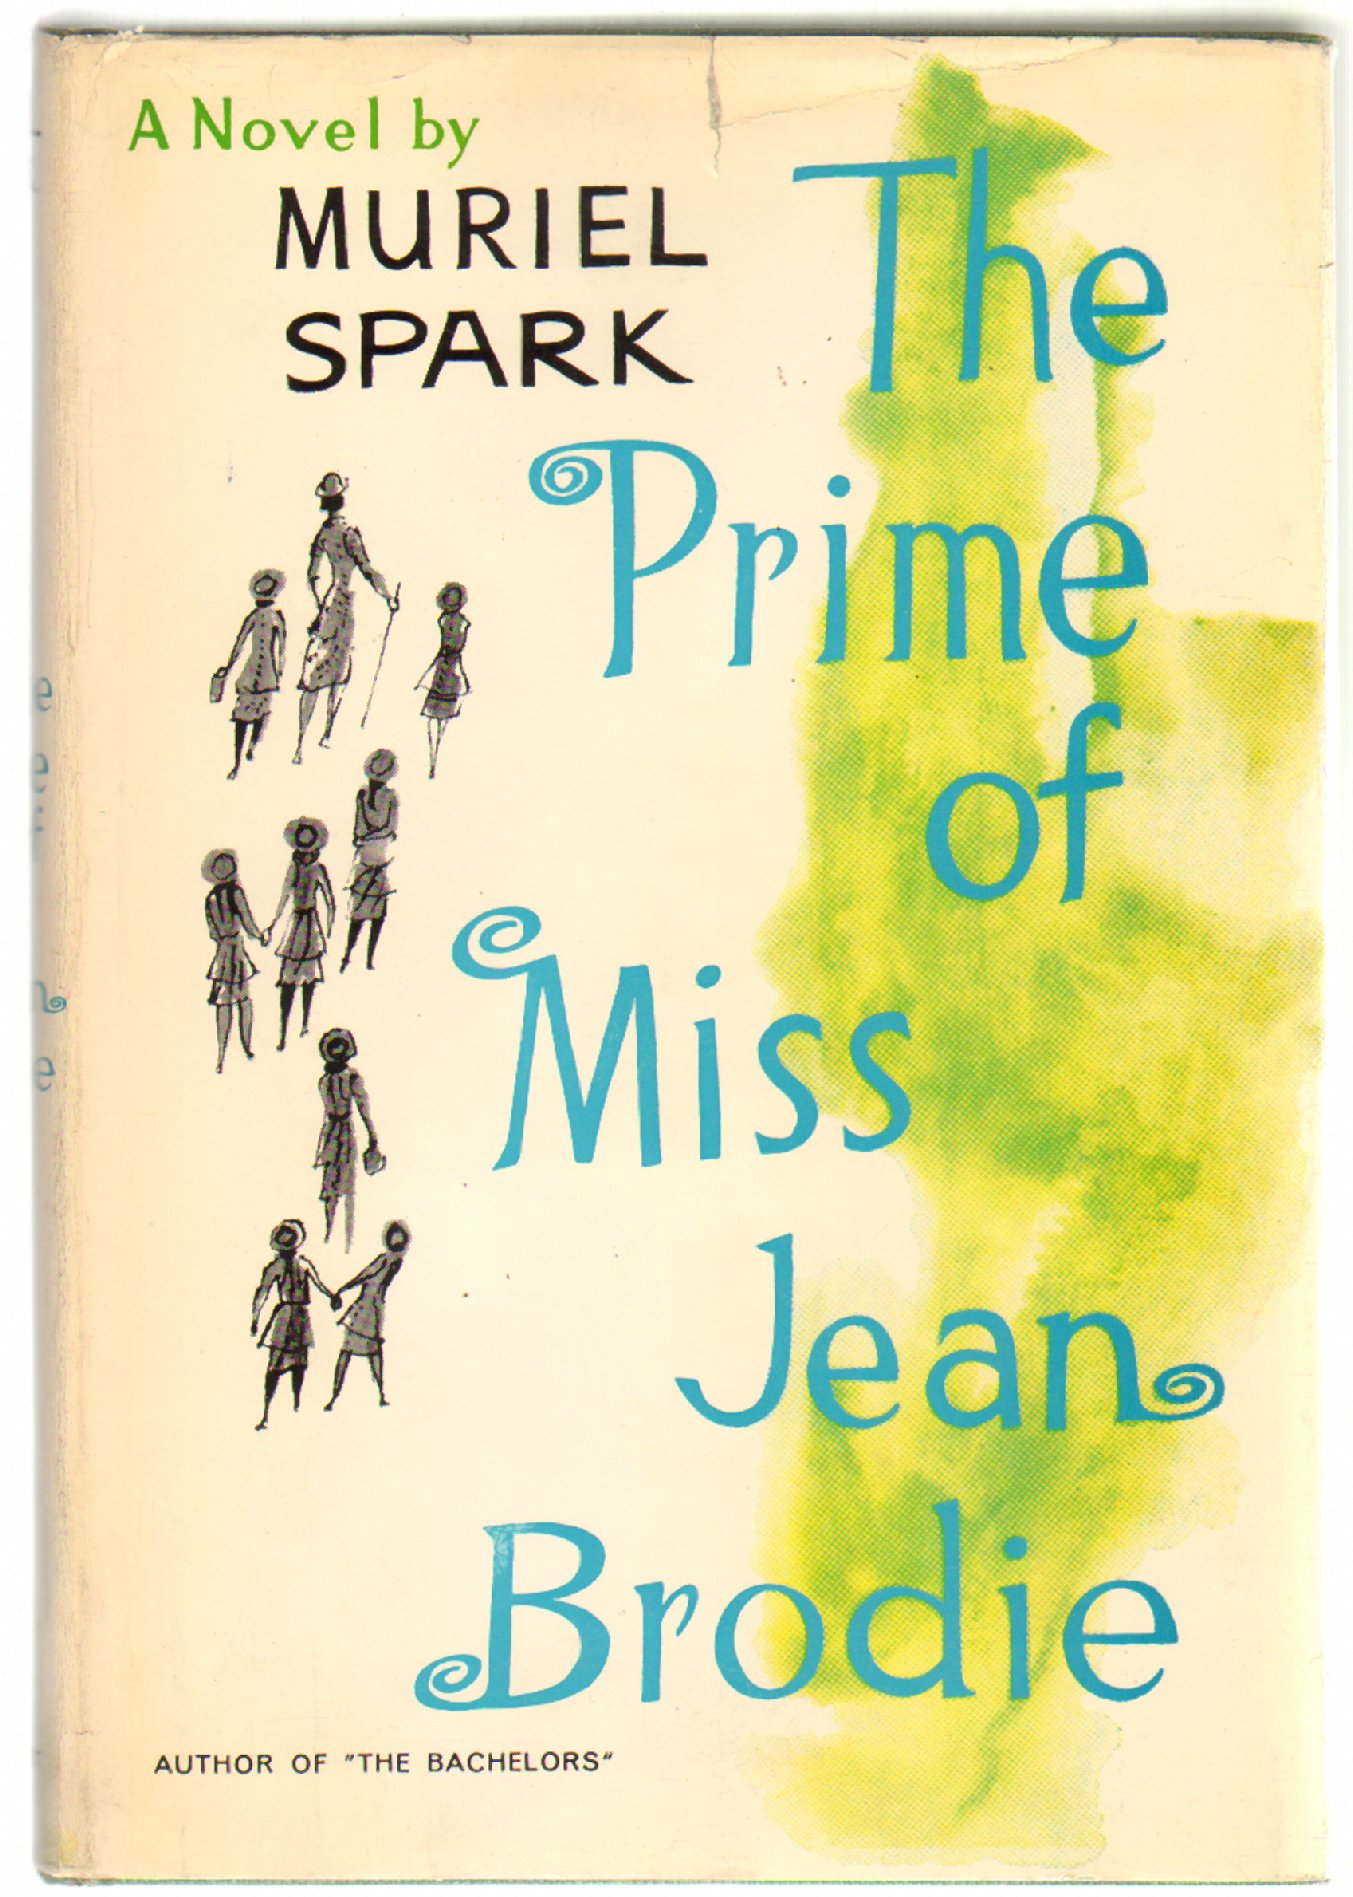 the relationships in the book the prime of miss jean brodie That is one of the book's comic conceits, said monica, so we should all say the word prime as often as possible' the prime of miss jean brodie the girls in truth, none of them was particularly interesting and it was only their arbitrary relationship with miss brodie that kept anyone awake for very long.